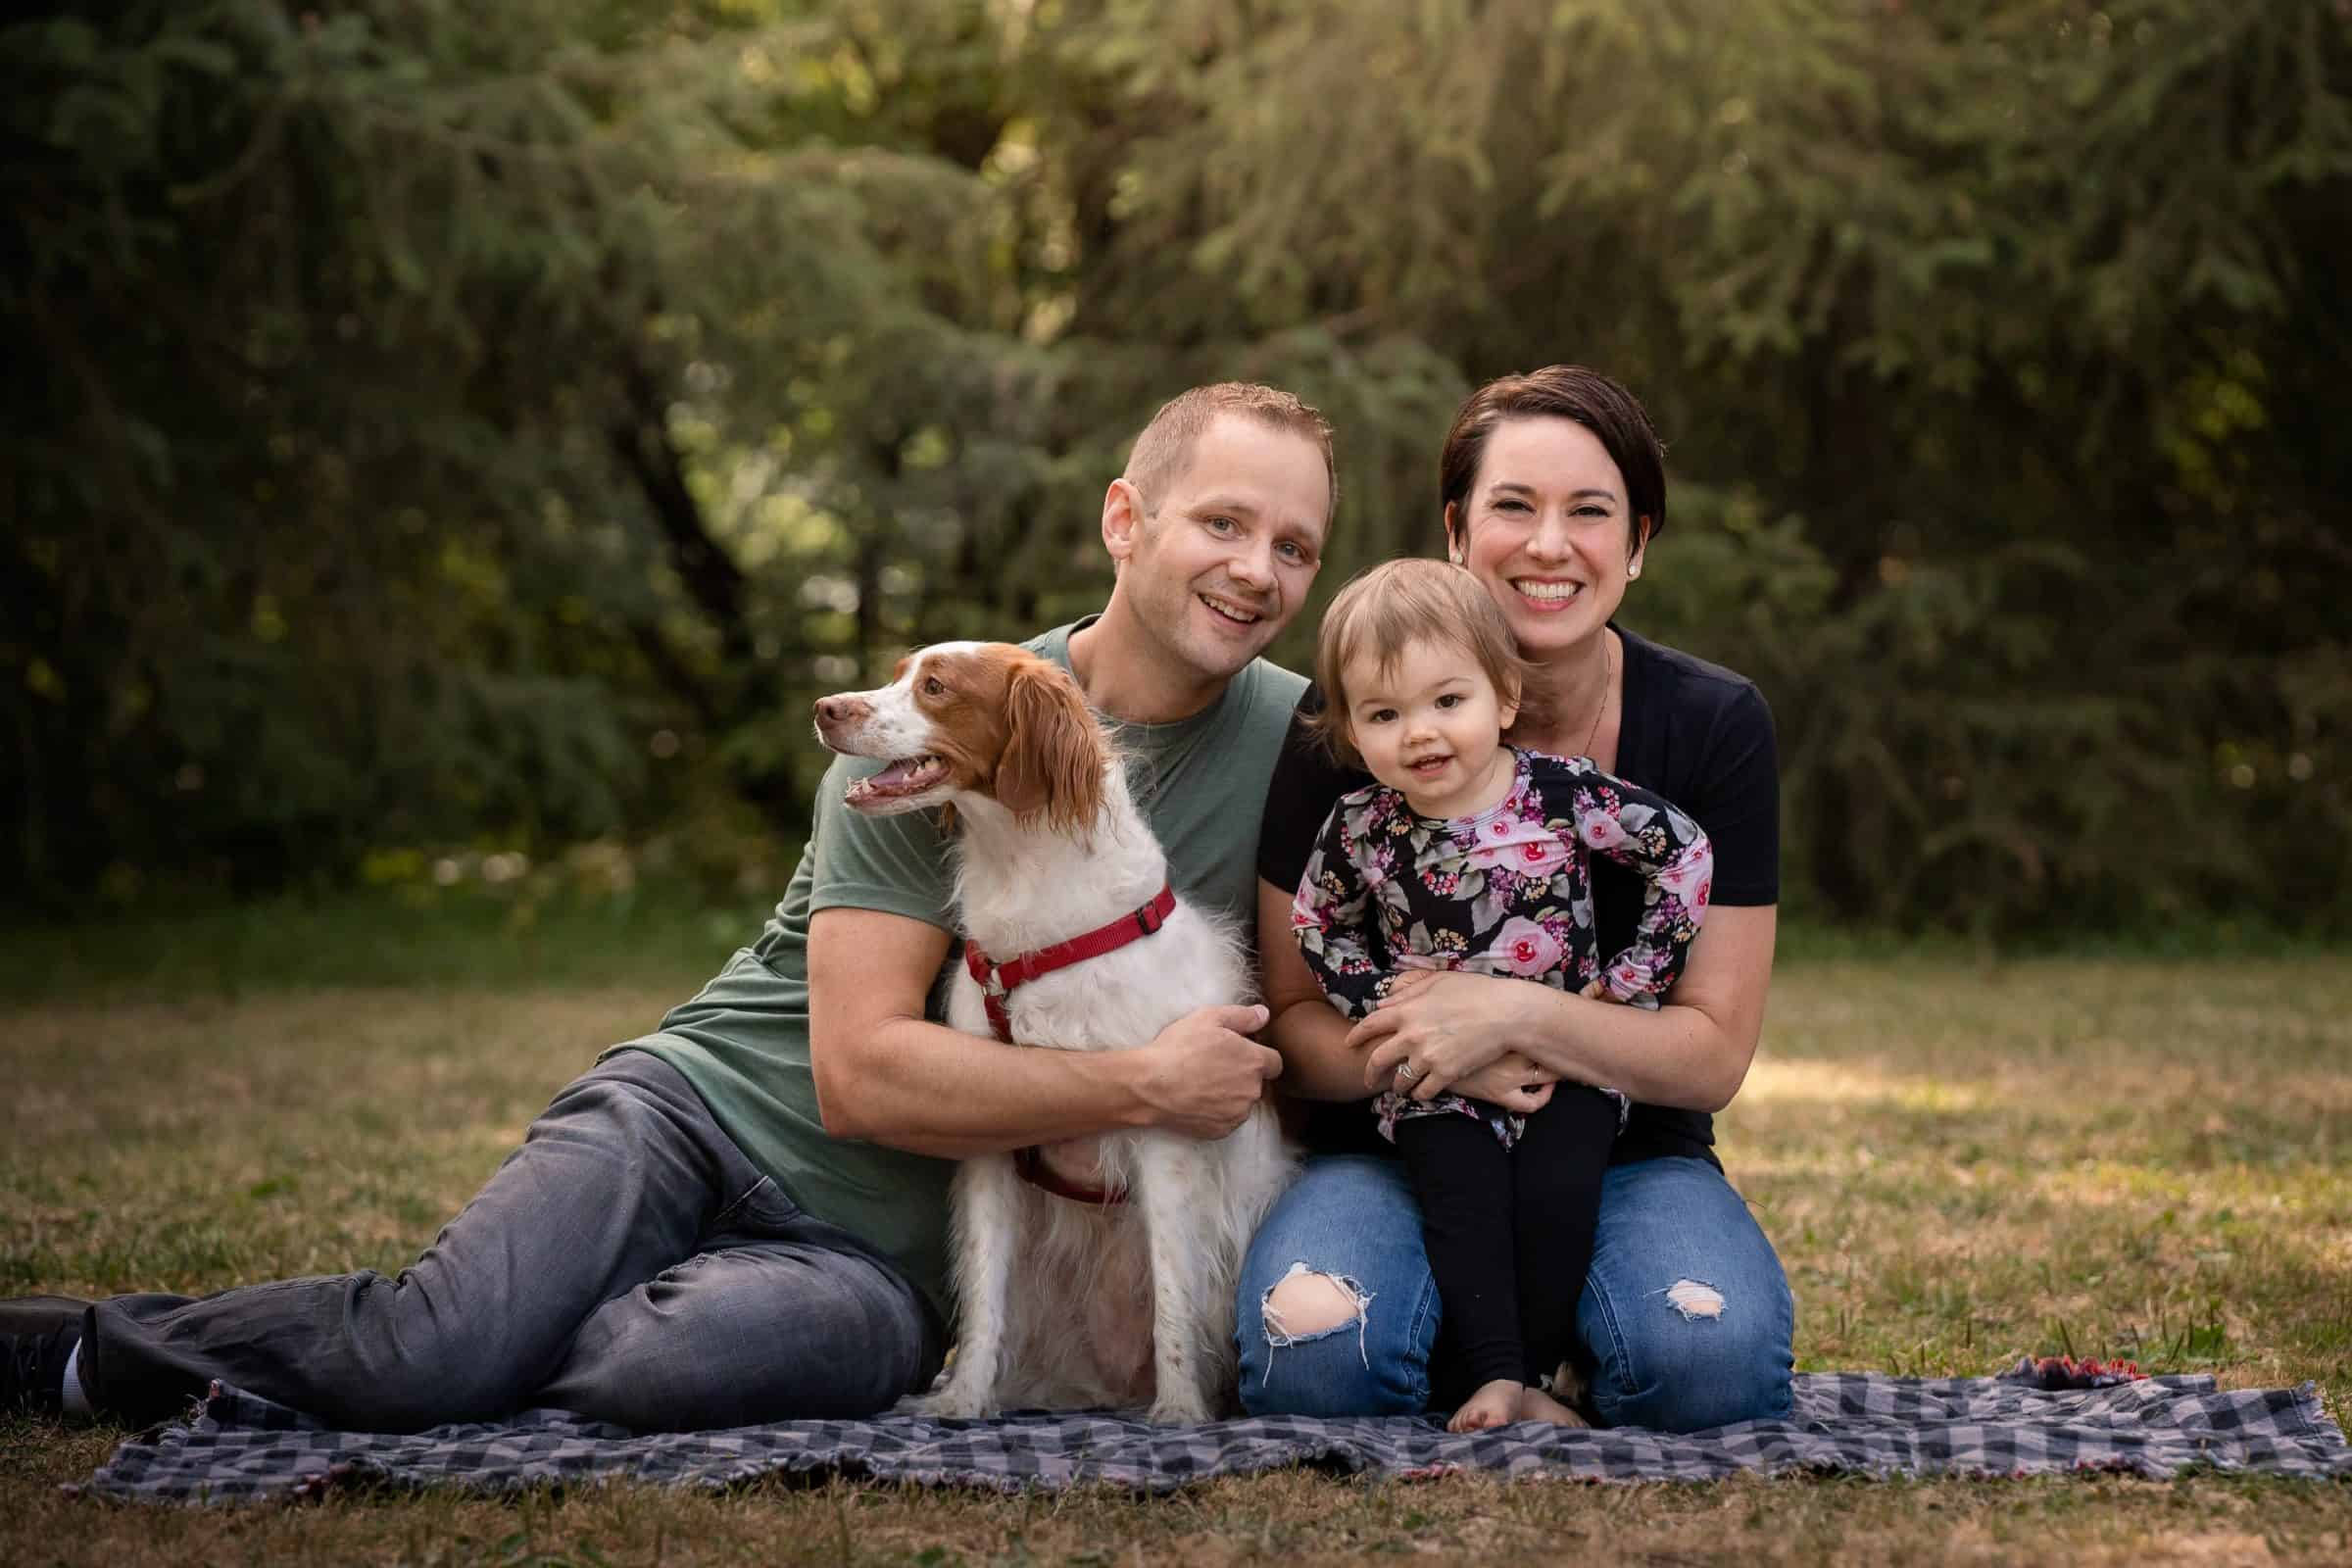 family photo on blanket with dog